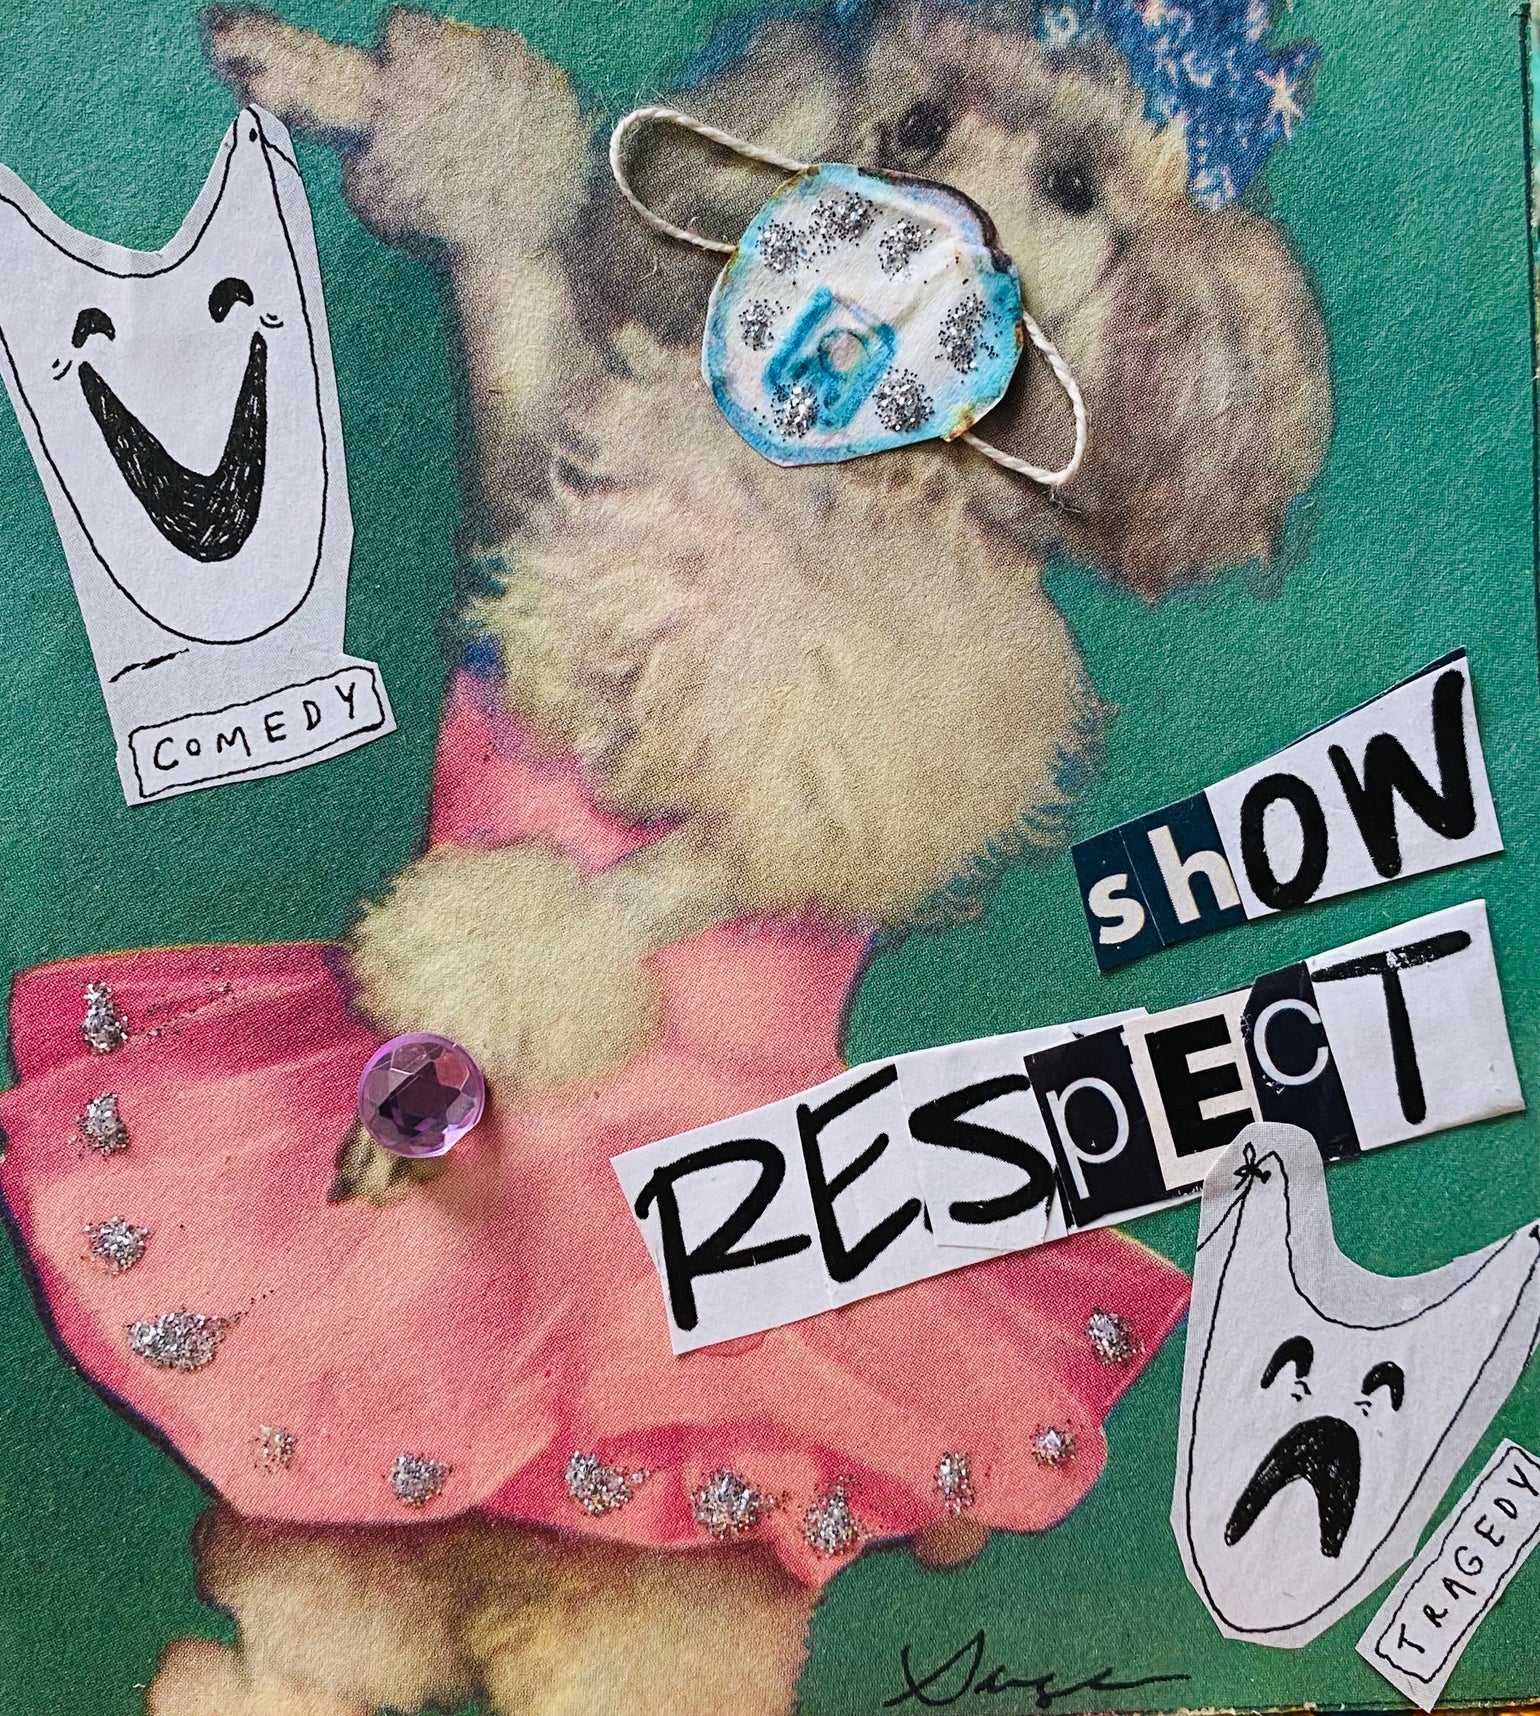 Image of show respect ballerina poodle